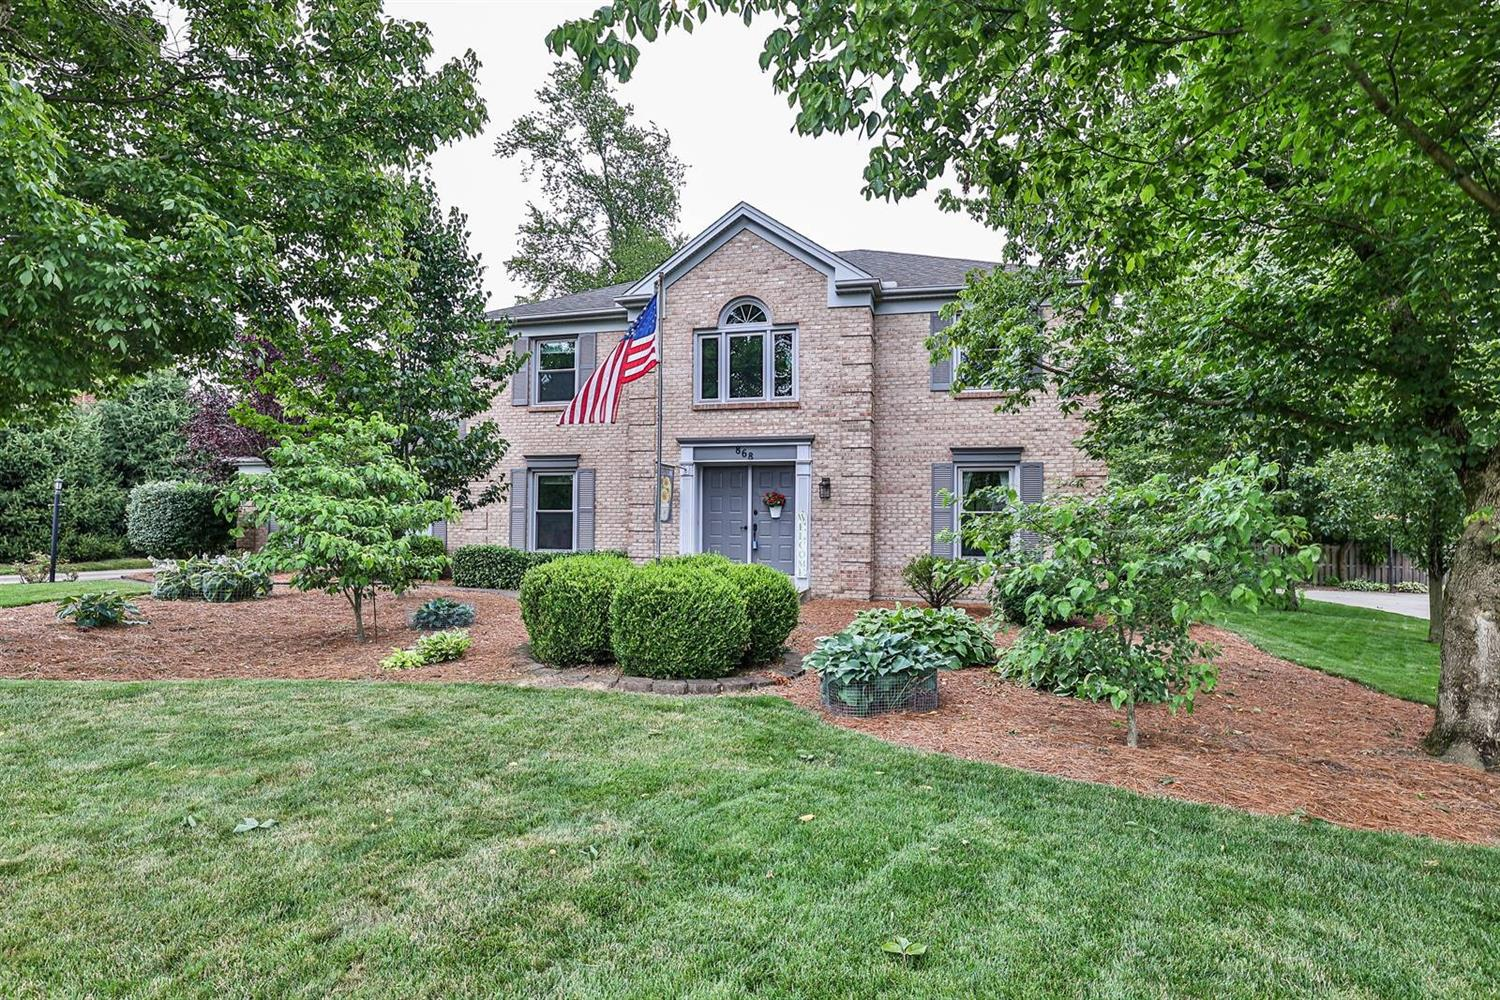 868 Markley Woods Way, Anderson Twp, Ohio 45230, 4 Bedrooms Bedrooms, 12 Rooms Rooms,2 BathroomsBathrooms,Single Family Residence,For Sale,Markley Woods,1705715